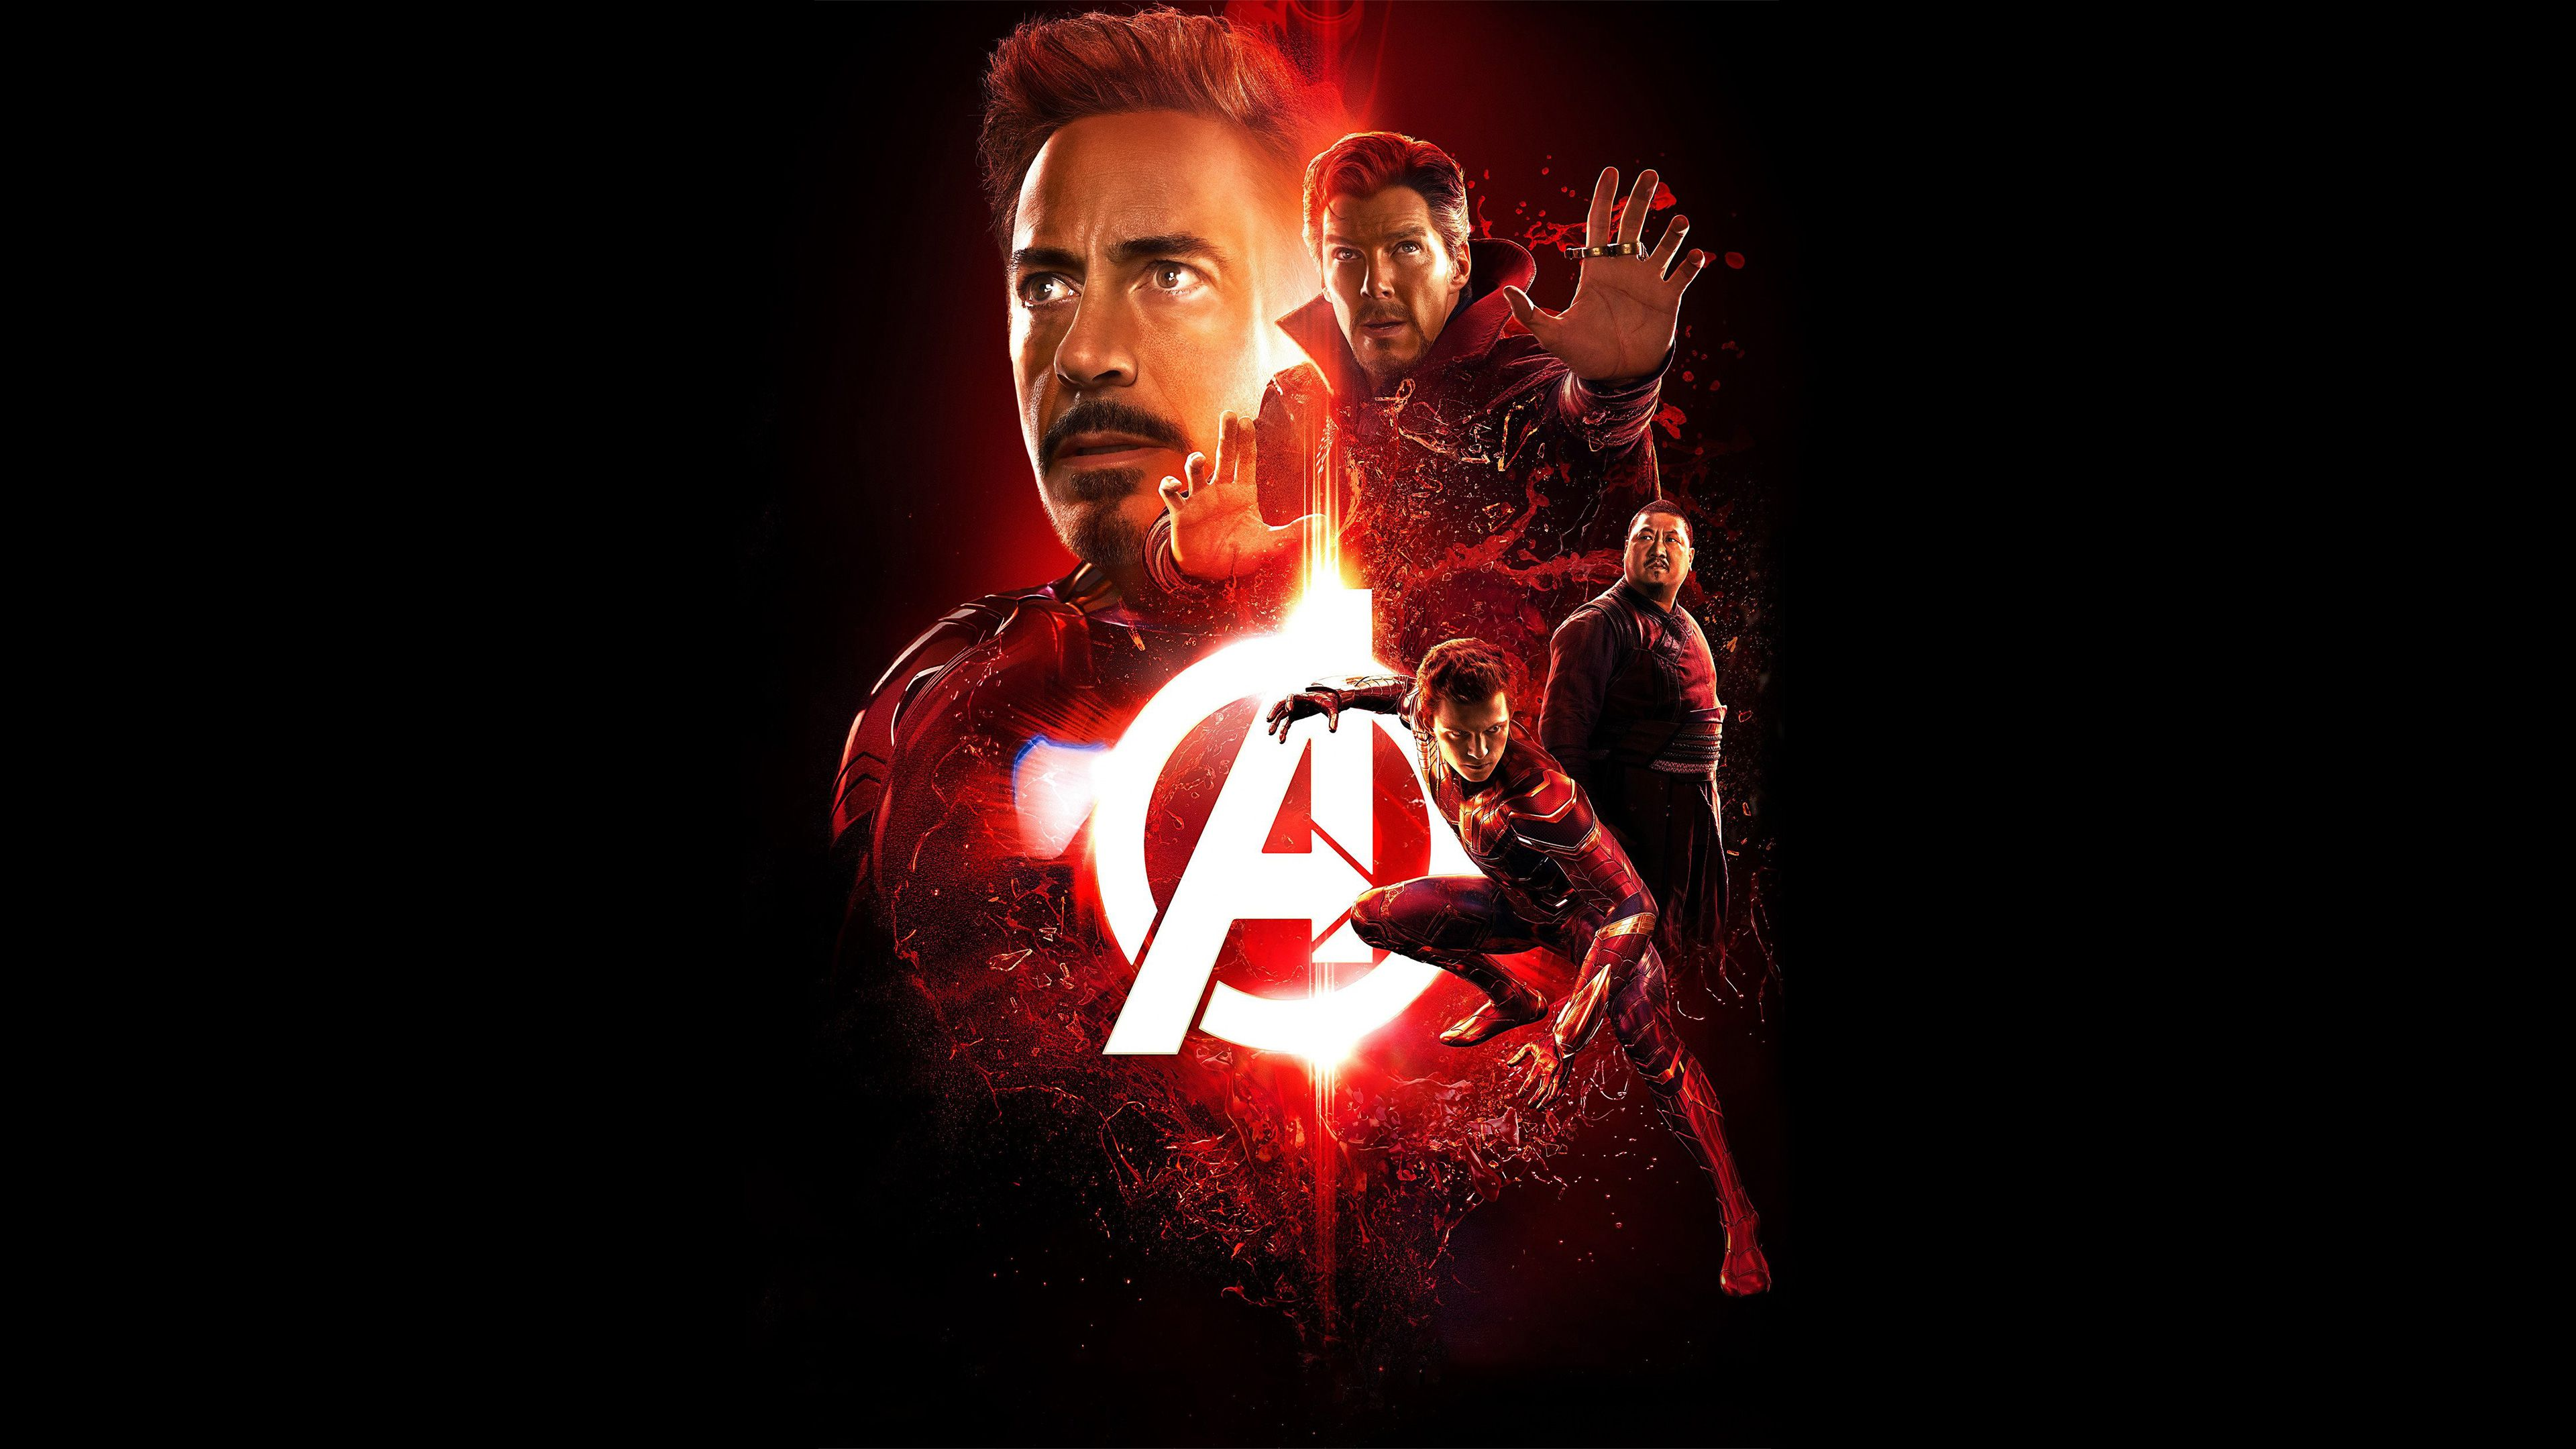 Avengers Infinity War 4k Ultra Hd Wallpaper And Background Image